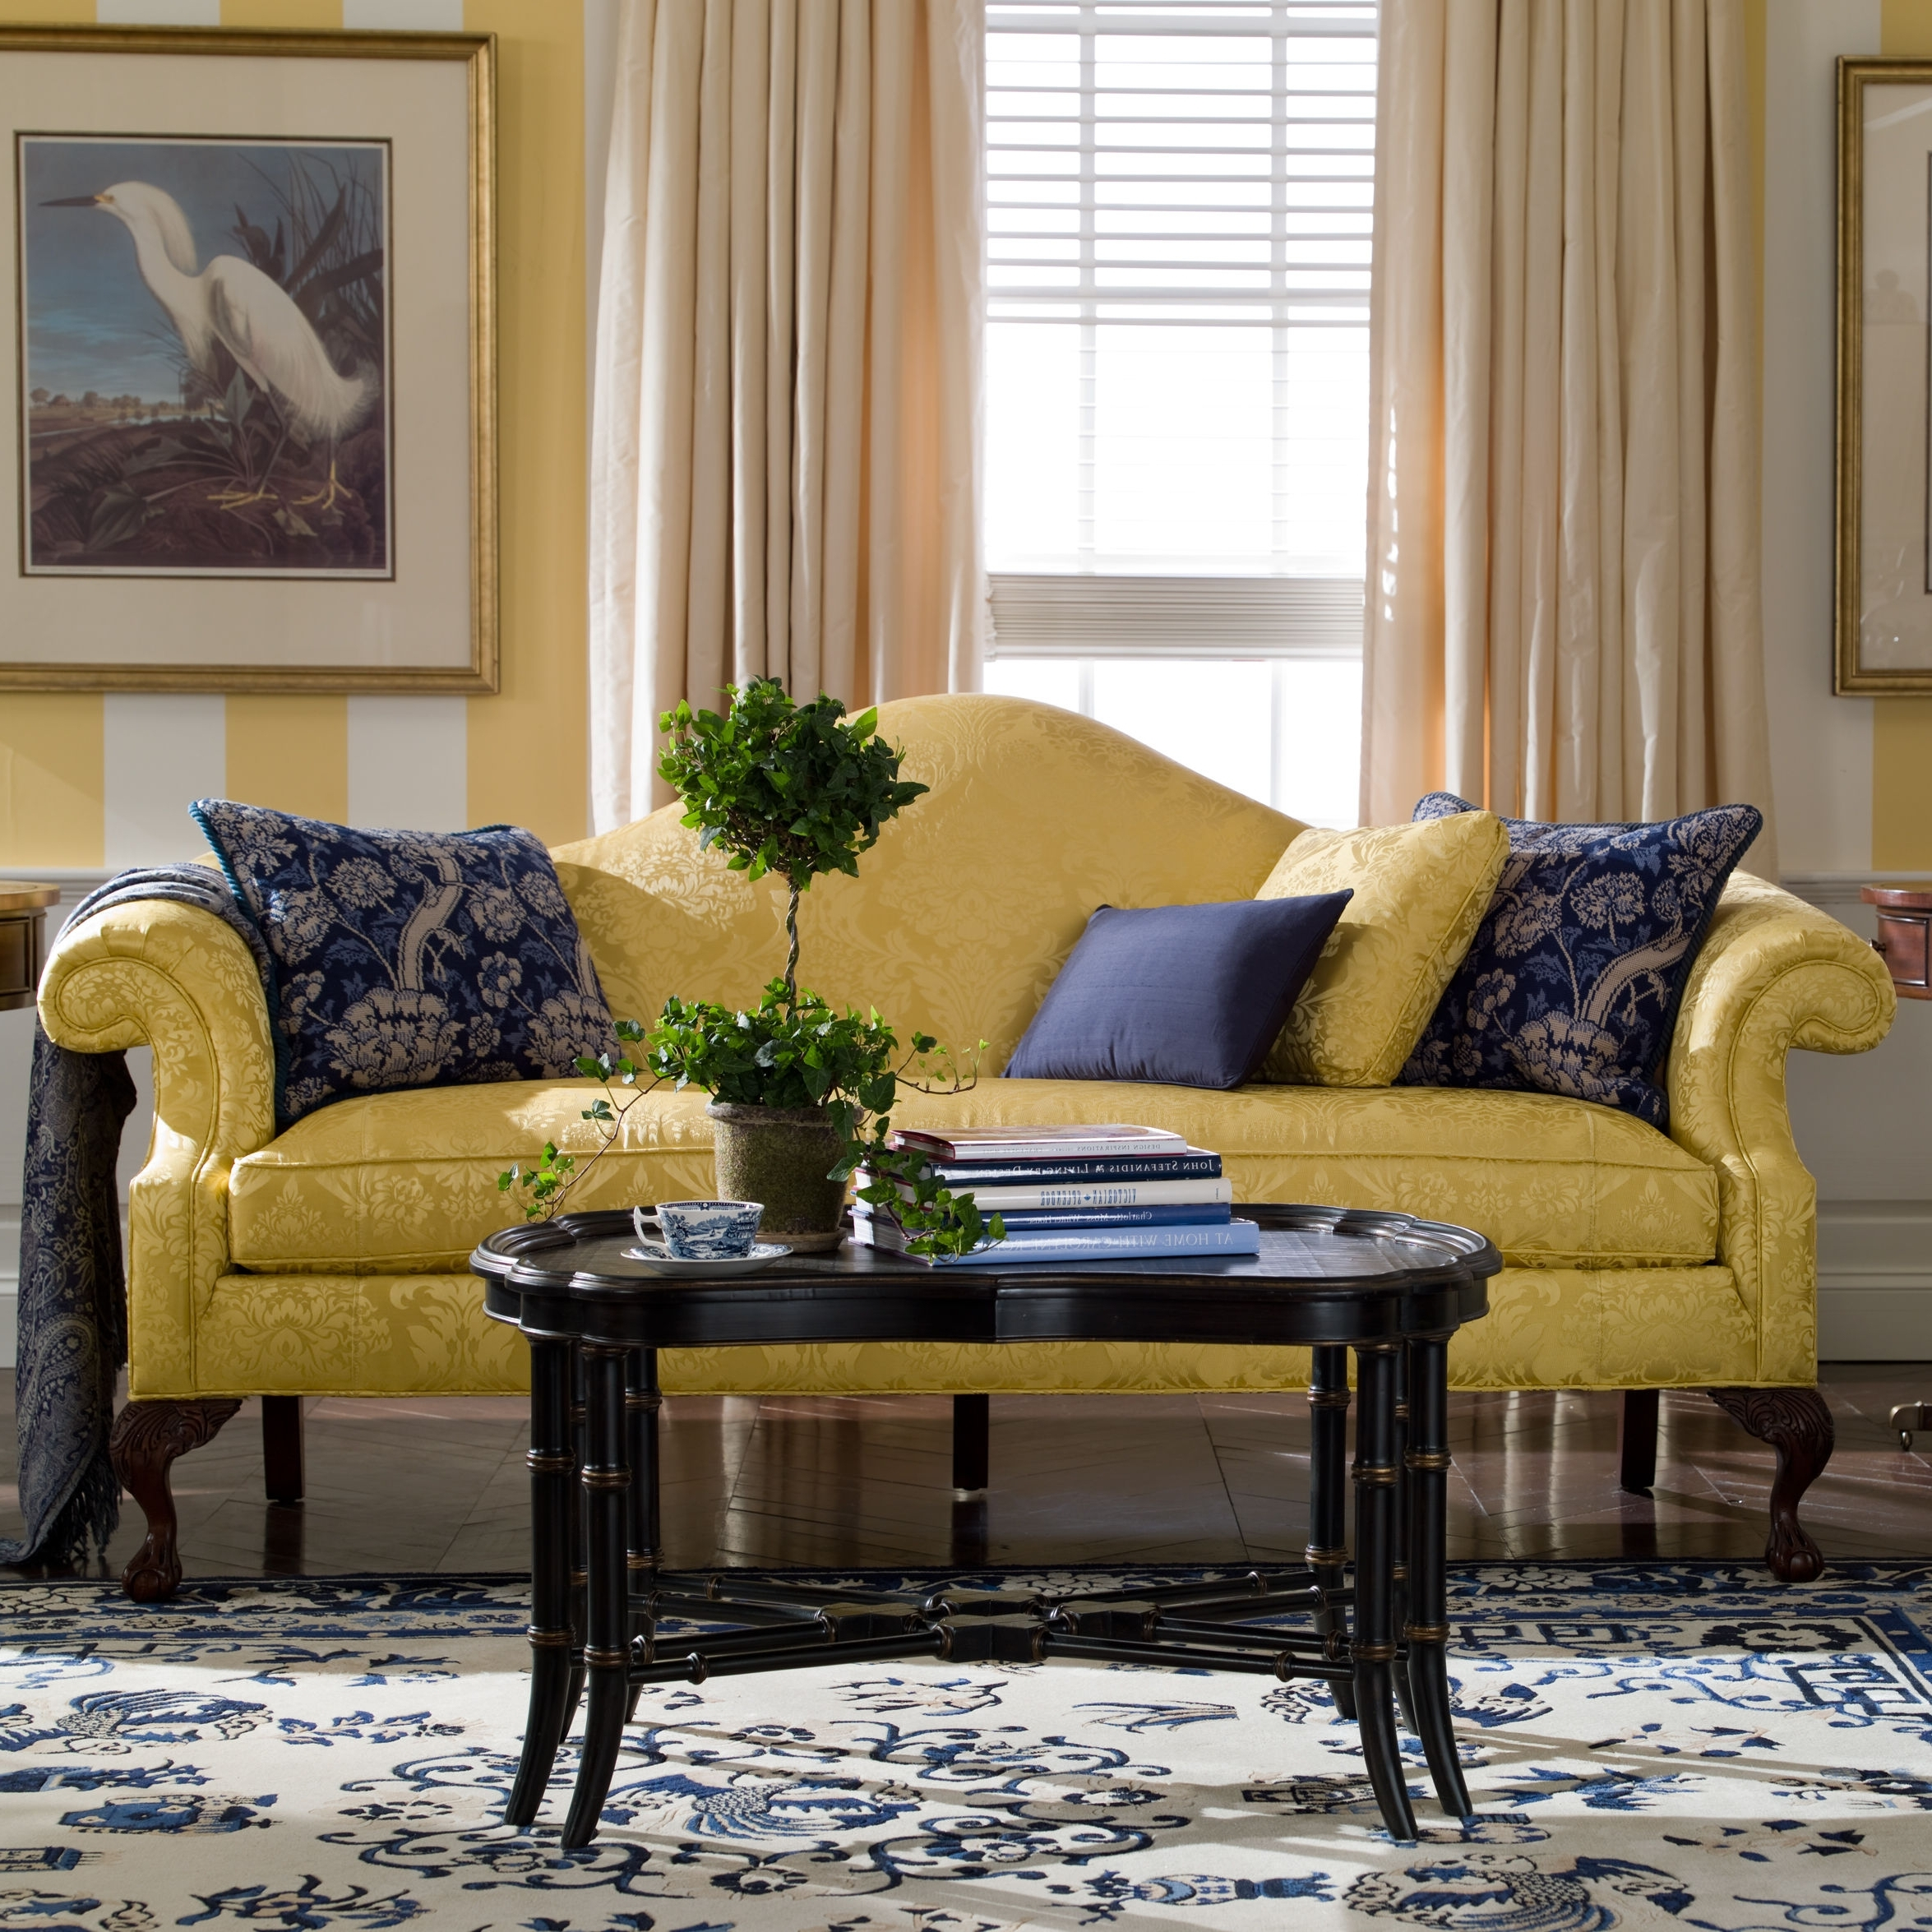 Ethan Allen Sofas And Chairs Within Fashionable Hepburn Sofa – Ethan Allen (With Different Fabric) (View 10 of 20)